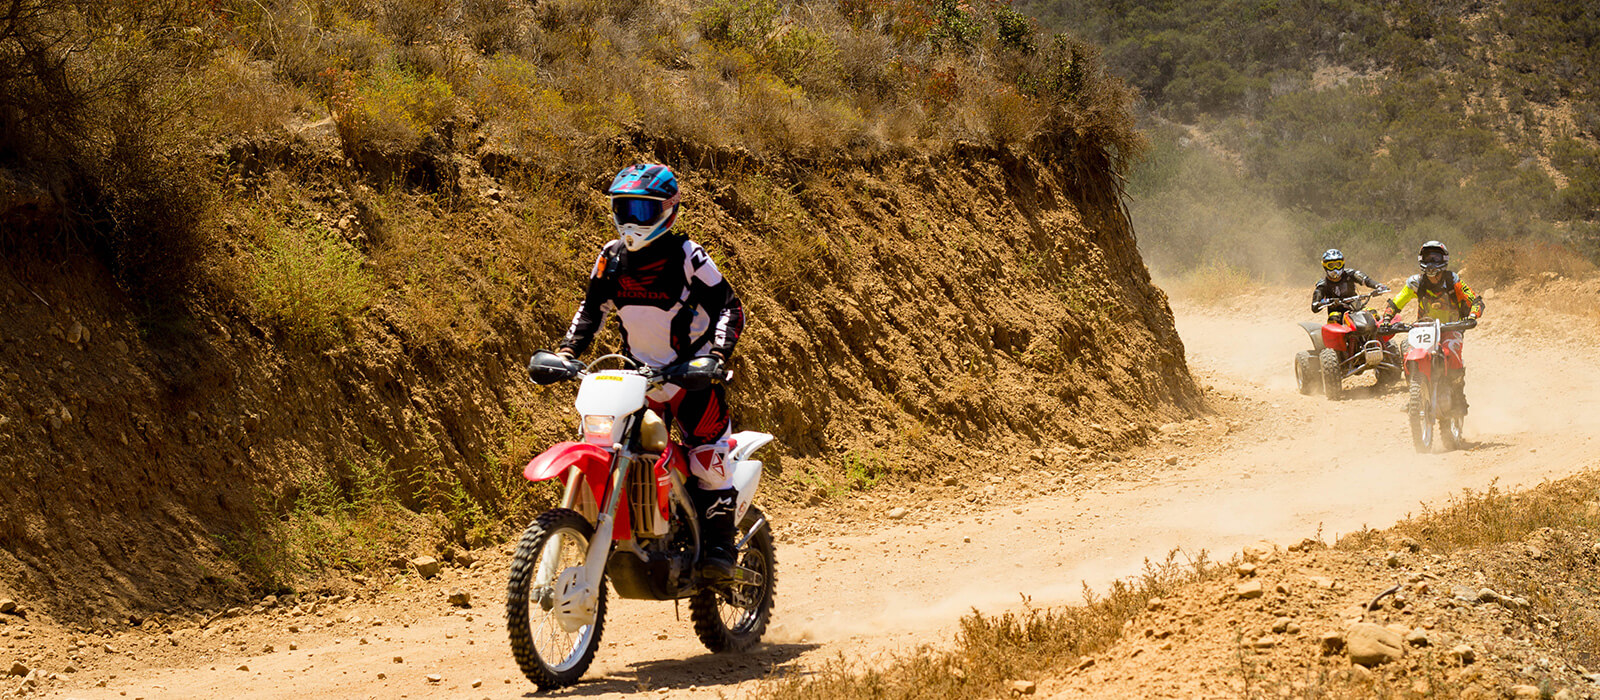 ATV & Bike riding tours Baja